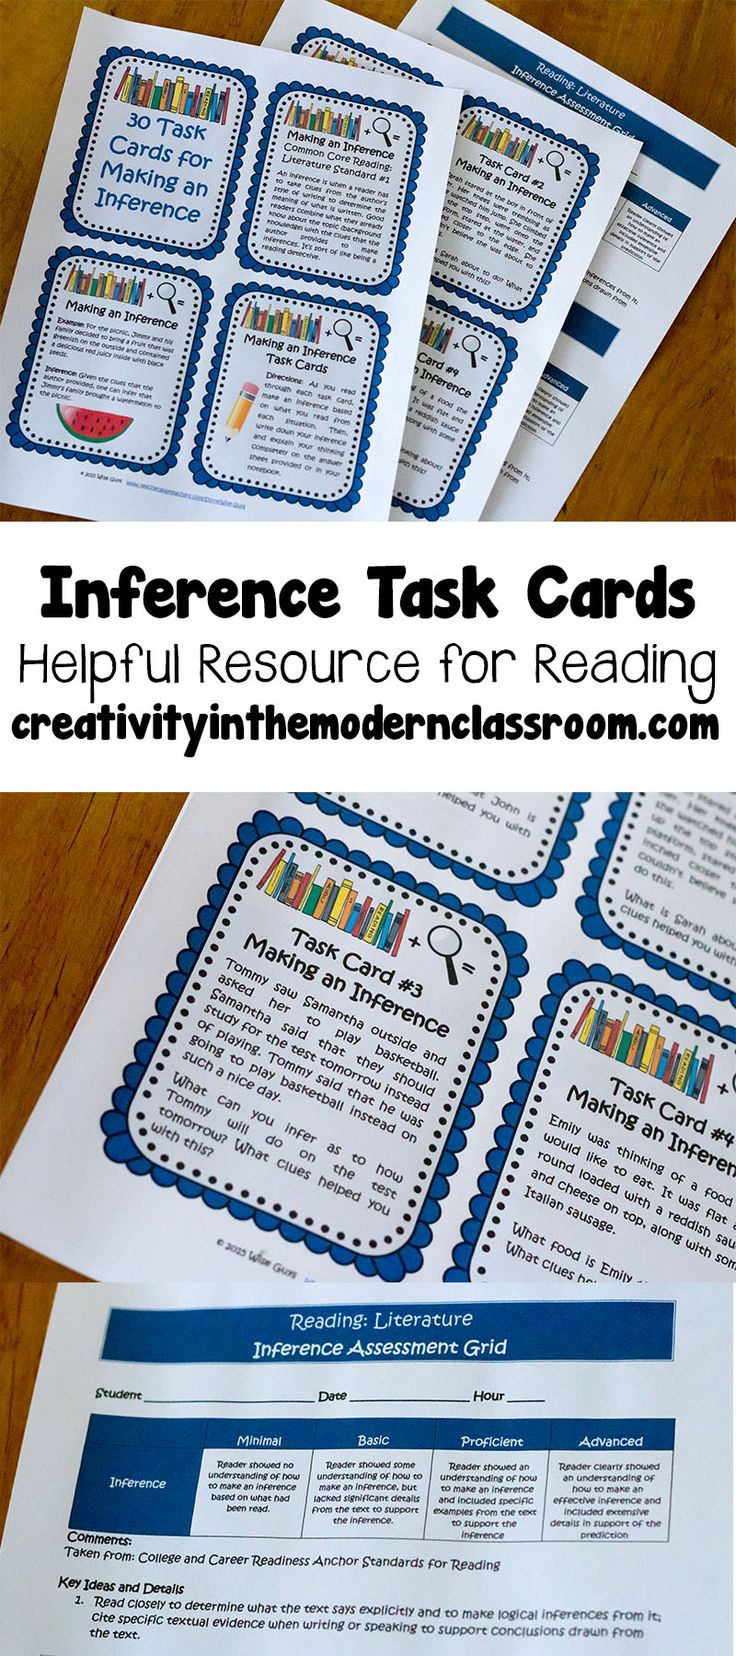 Included are 30 task cards to help your students with the reading skill of inference which is a big part of the CCSS. Each card has a situation in which the reader has to infer what is happening based on the context clues and his/her background knowledge. This is great practice for understanding inferences.